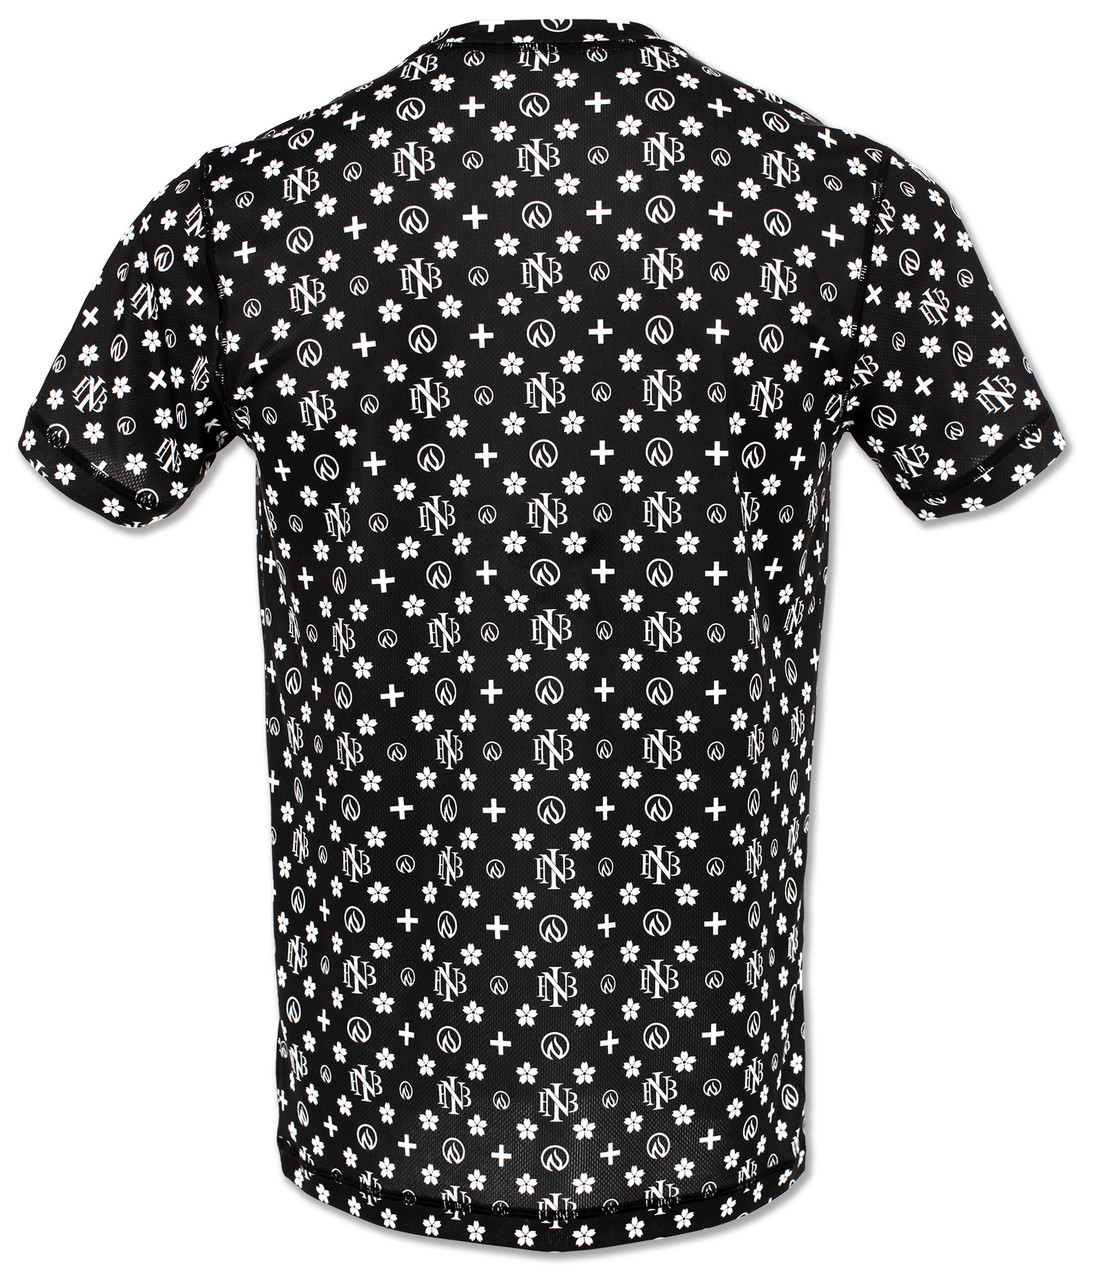 INKnBURN Men's Club INB Monogram Tech Shirt Back